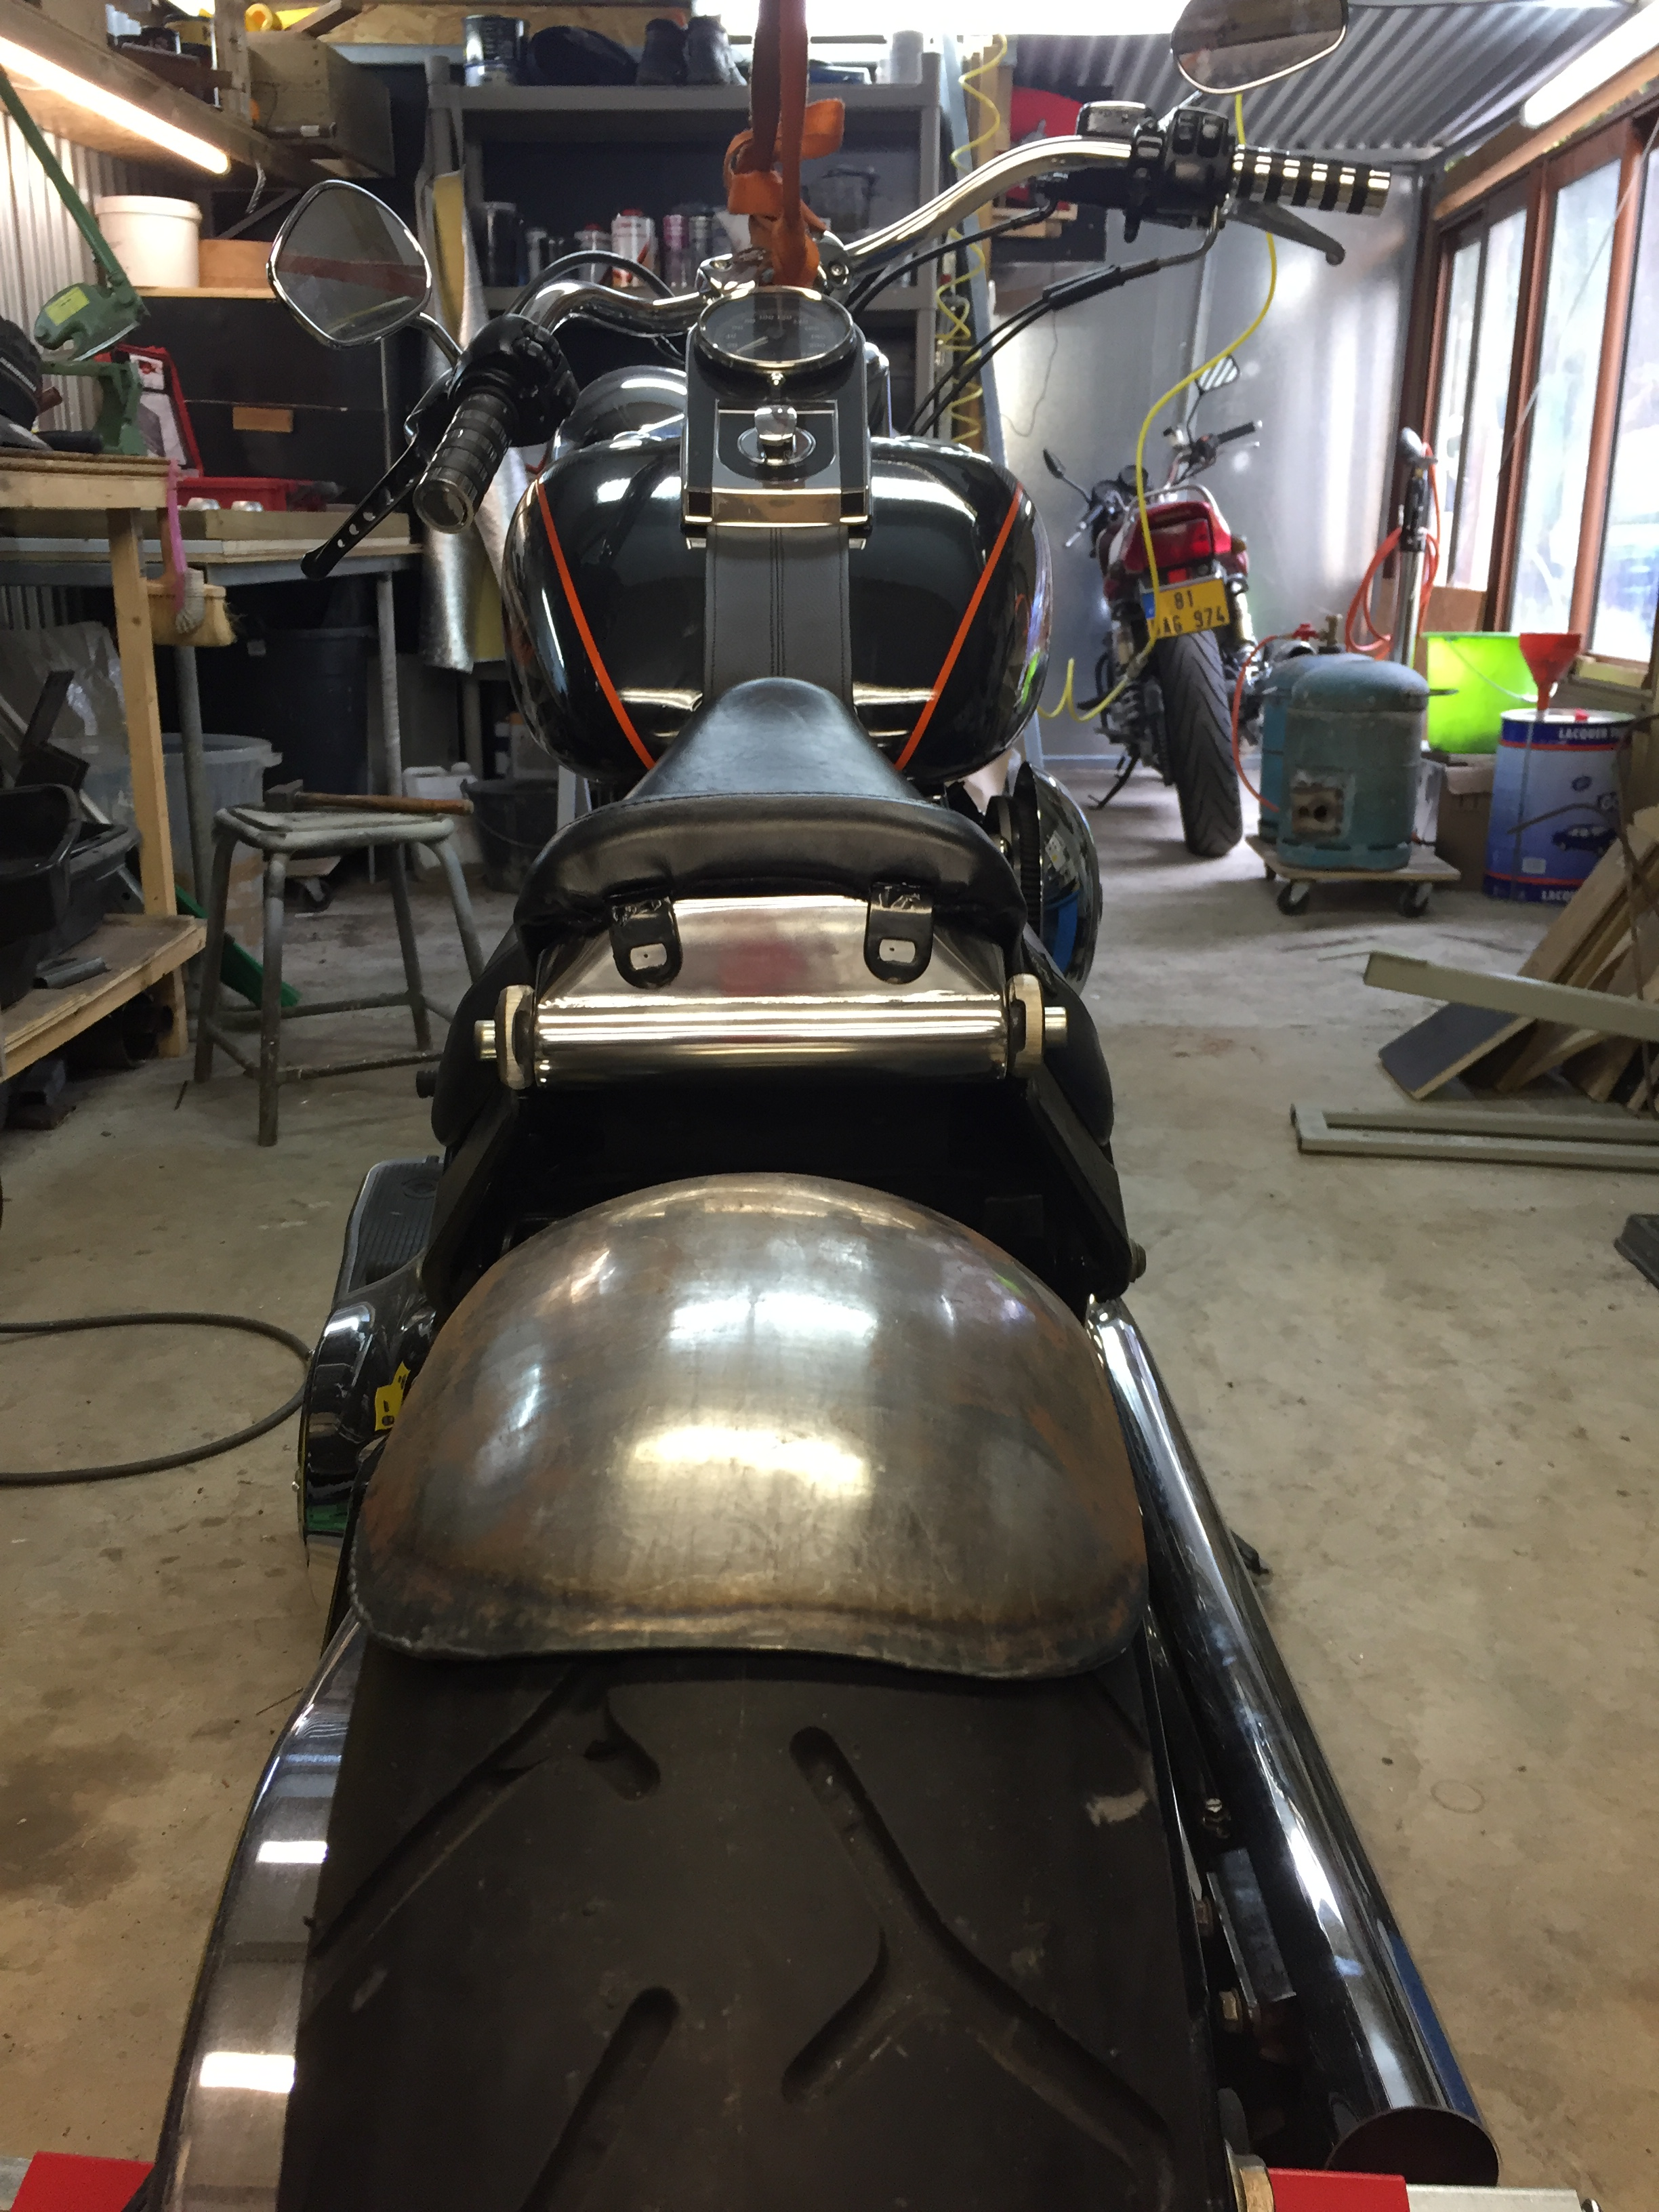 garde boue arriere sur mesure pour harley davidson softail. fabrication run iron works